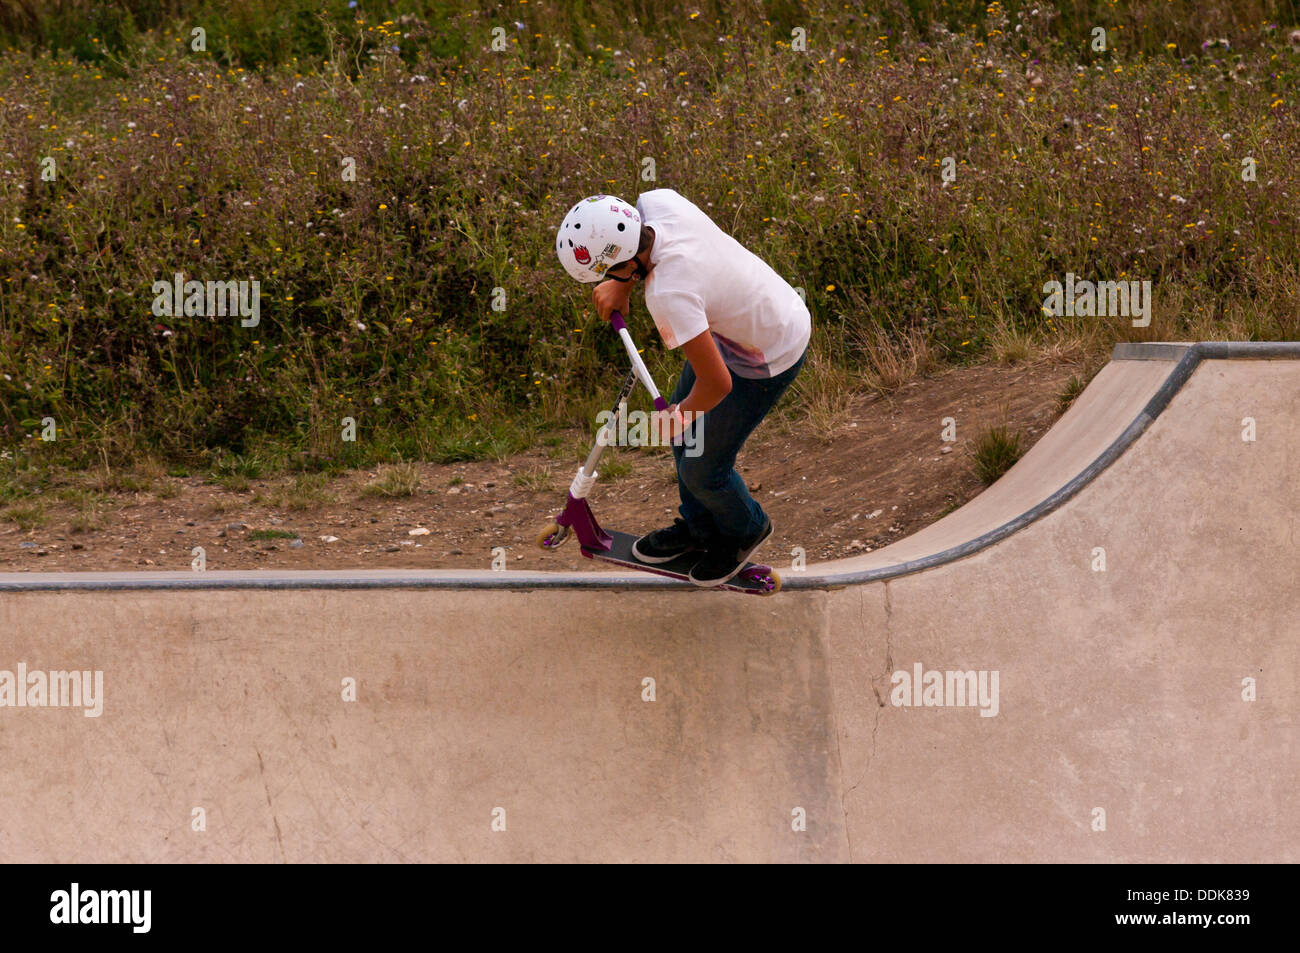 Young Boy performing stunts on a scooter - Stock Image